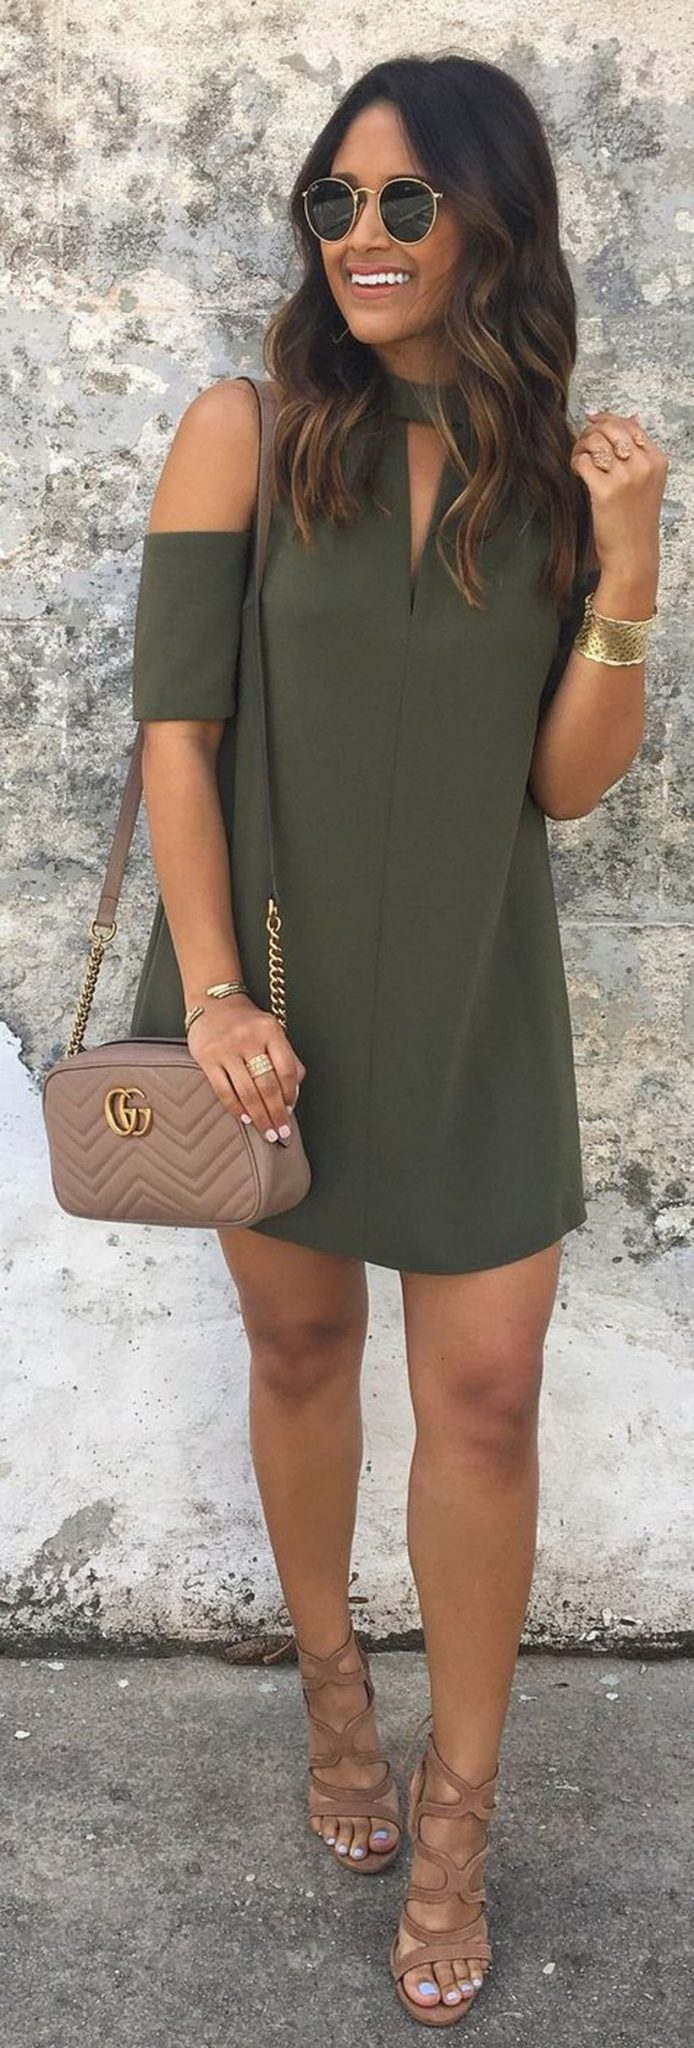 Stylish open shoulder dress outfits 2017 2